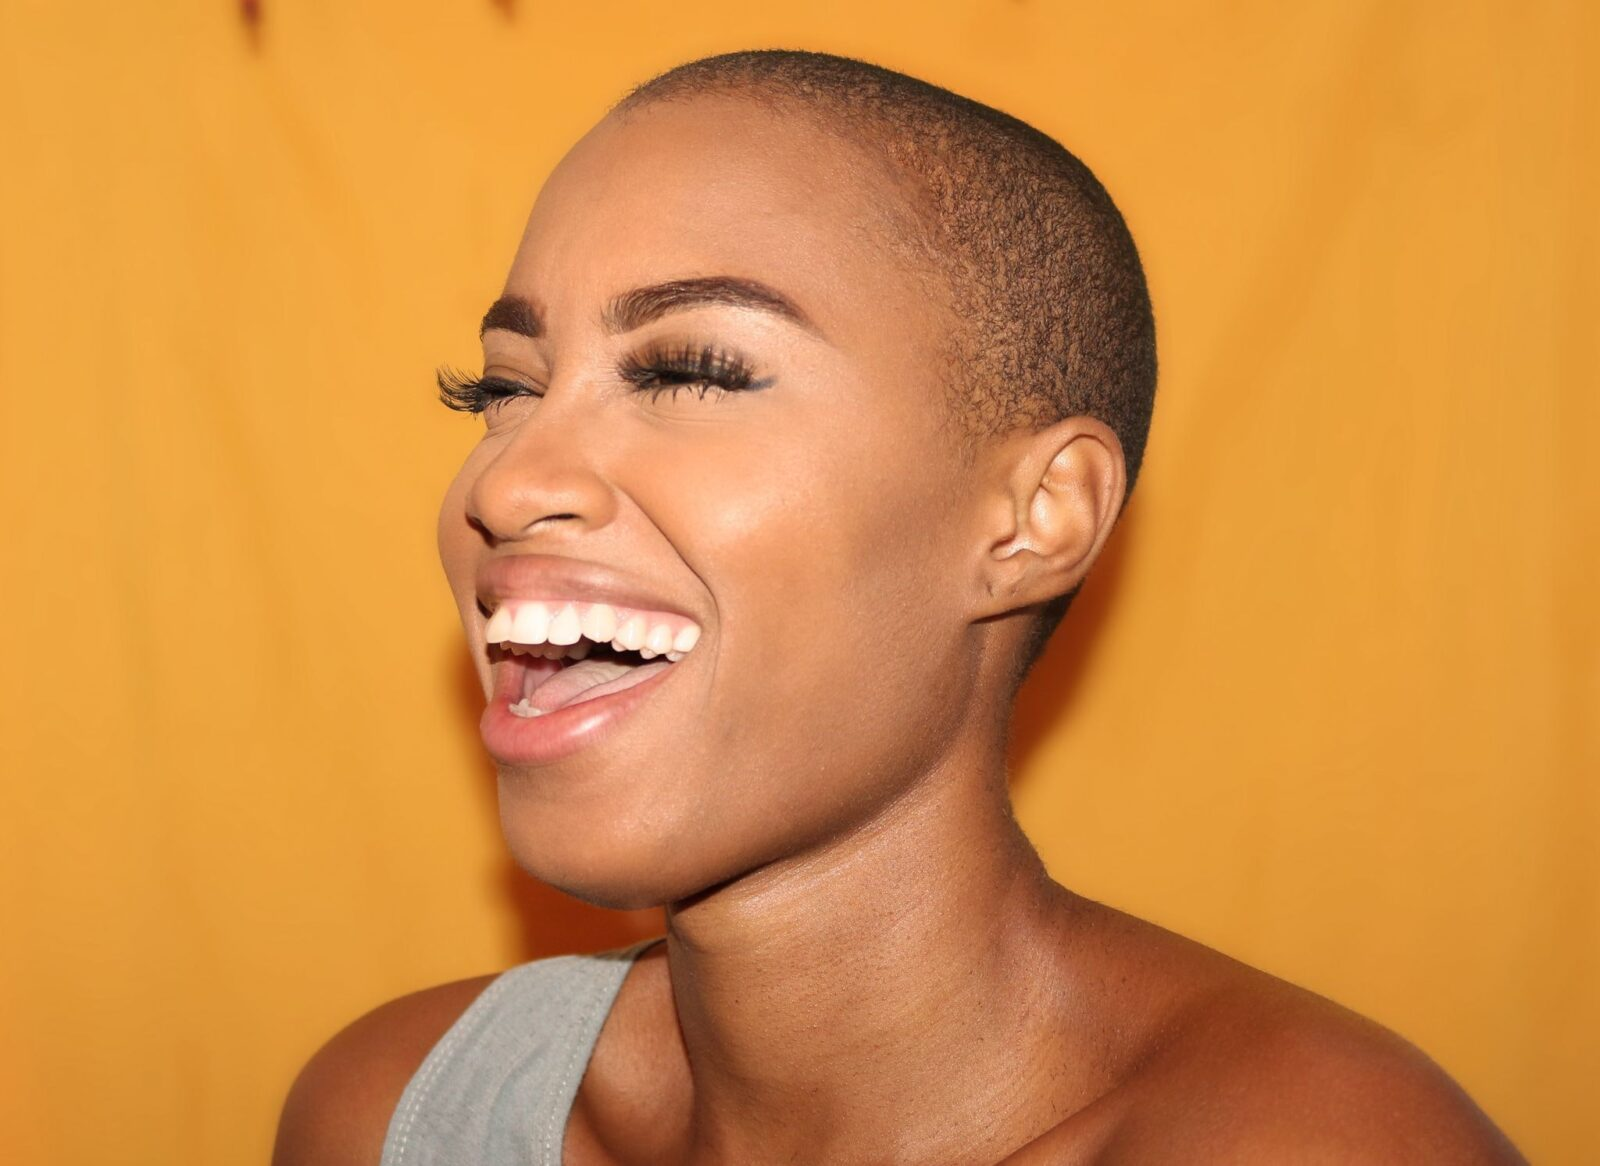 Bald woman on yellow background smiling with mouth open and eyes closed